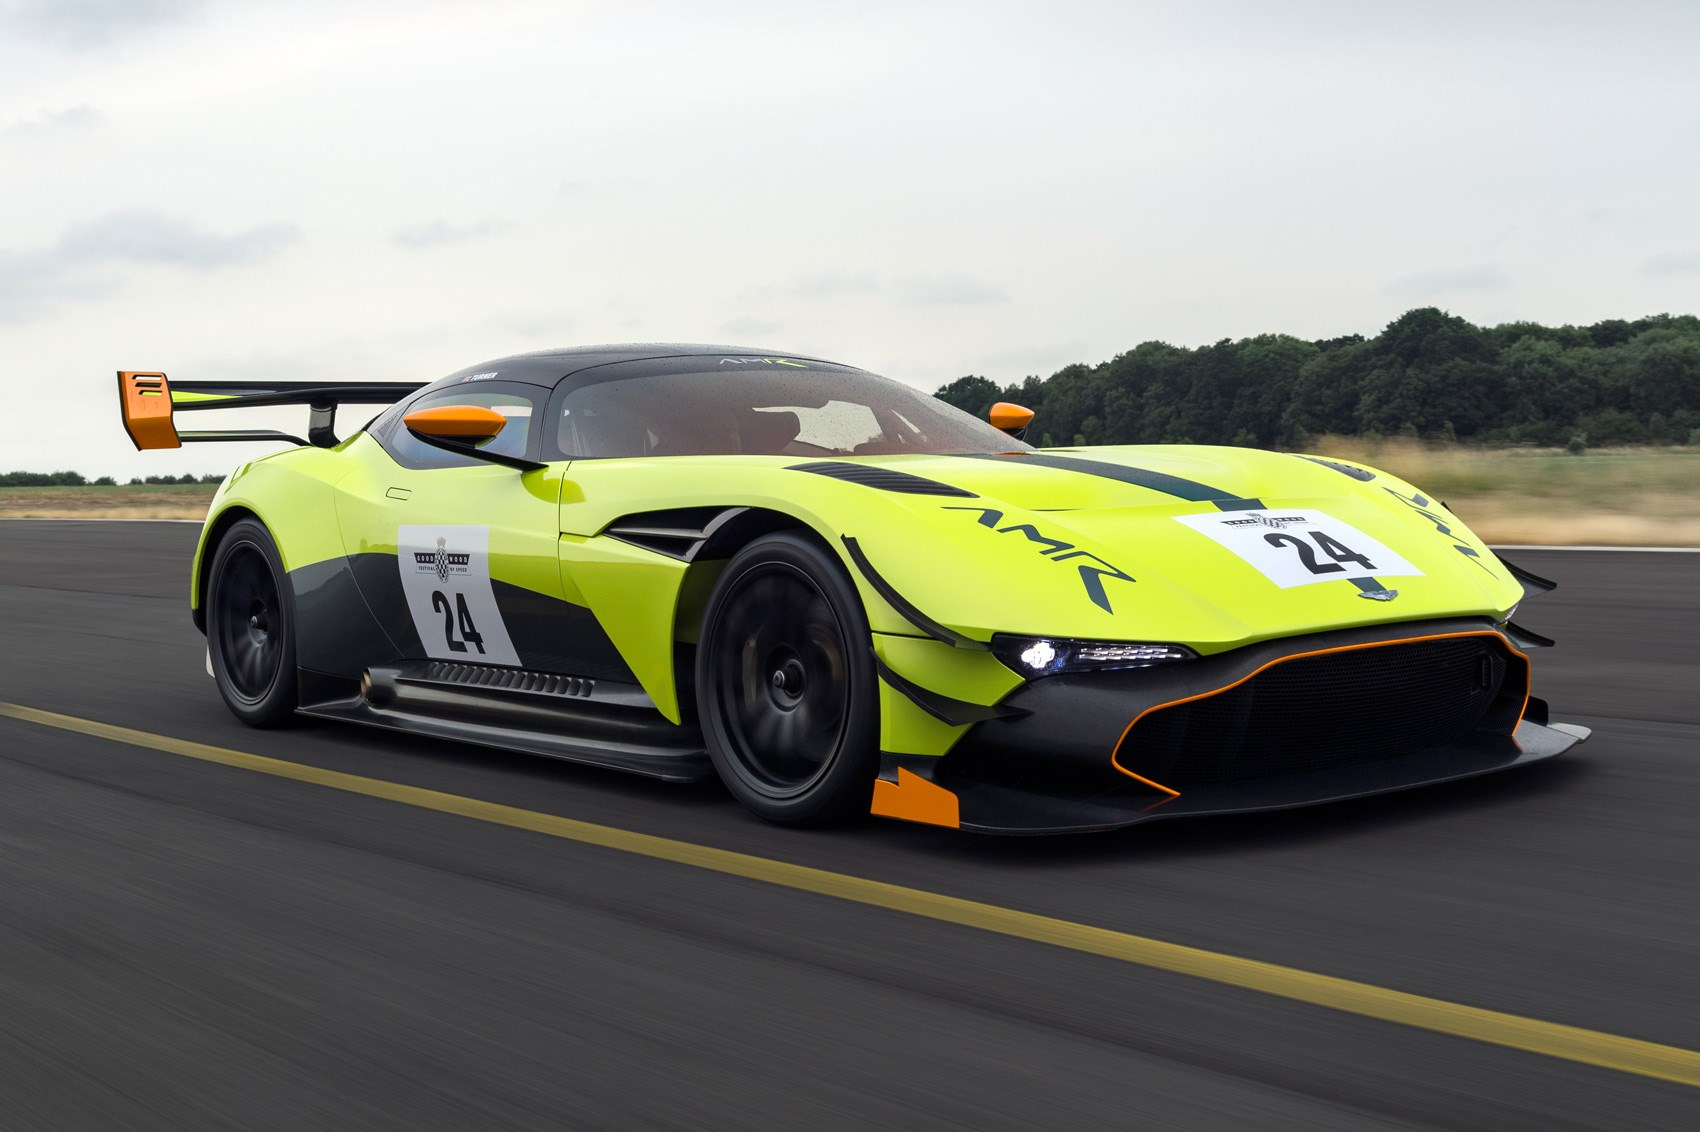 More Downforce, Sir? Aston Martin Vulcan AMR Pro Debuts At